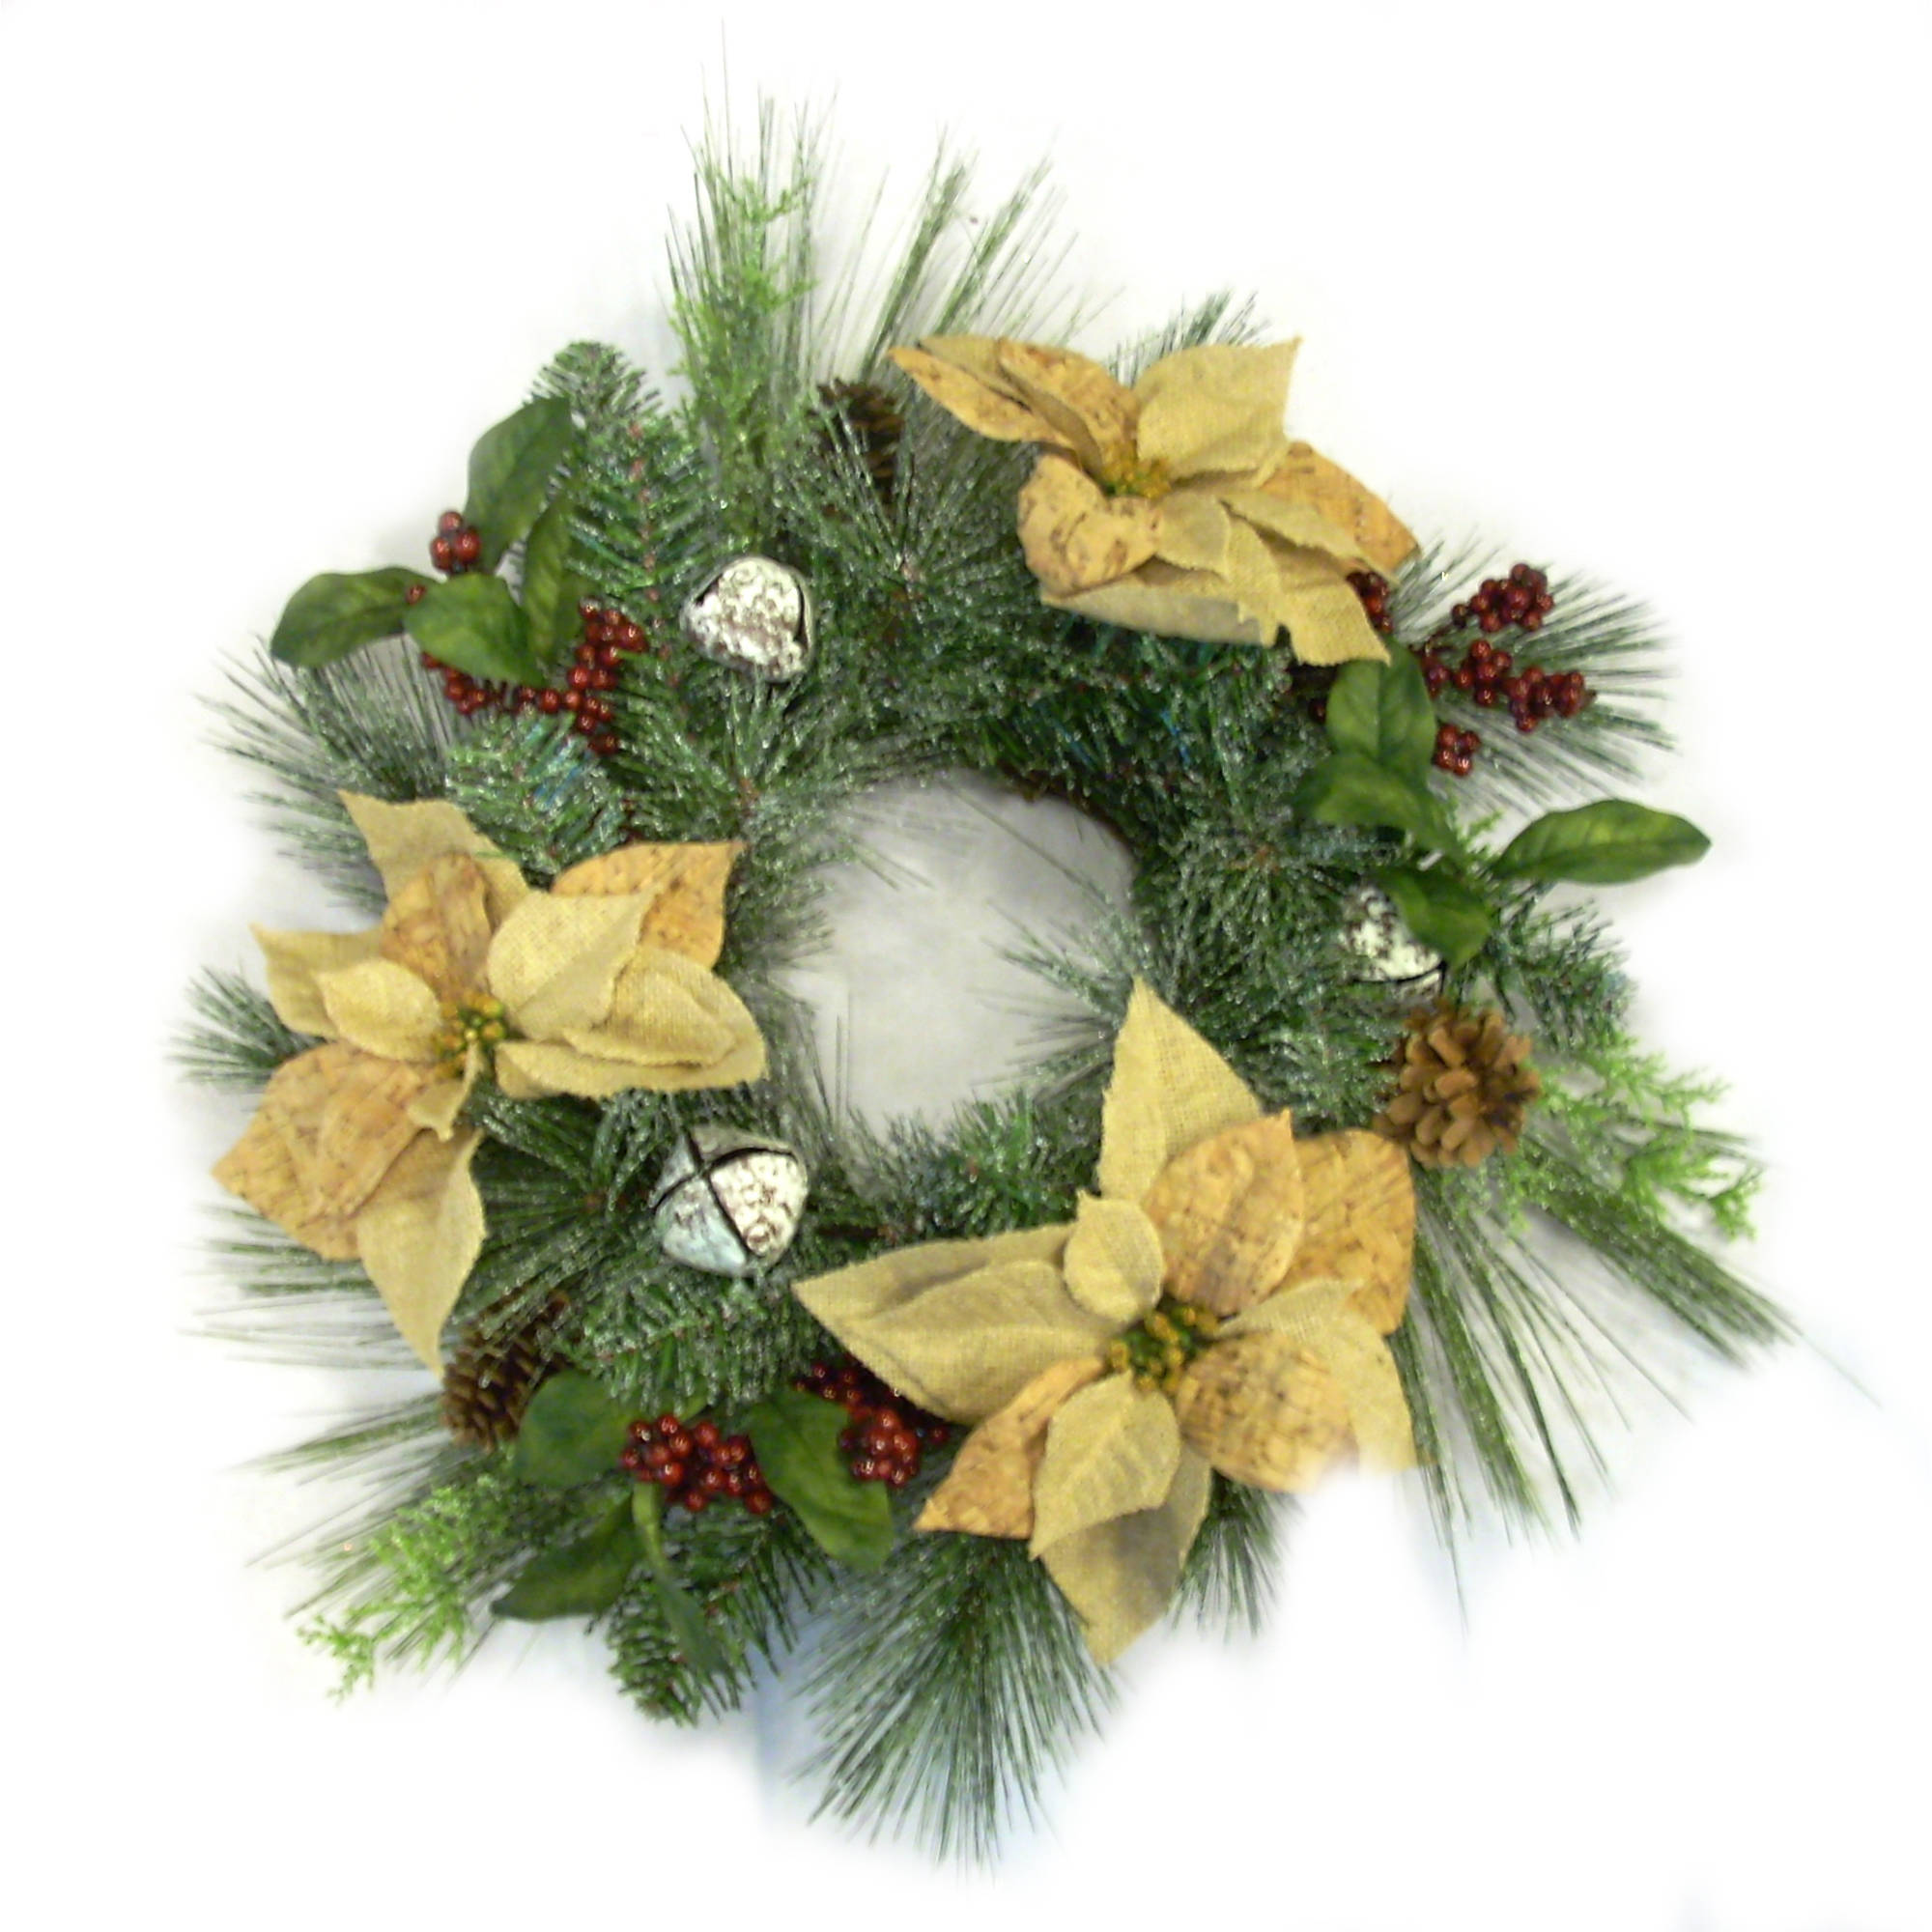 "Holiday Time Christmas Decor 20"" Burlap Poinsettia Wreath"